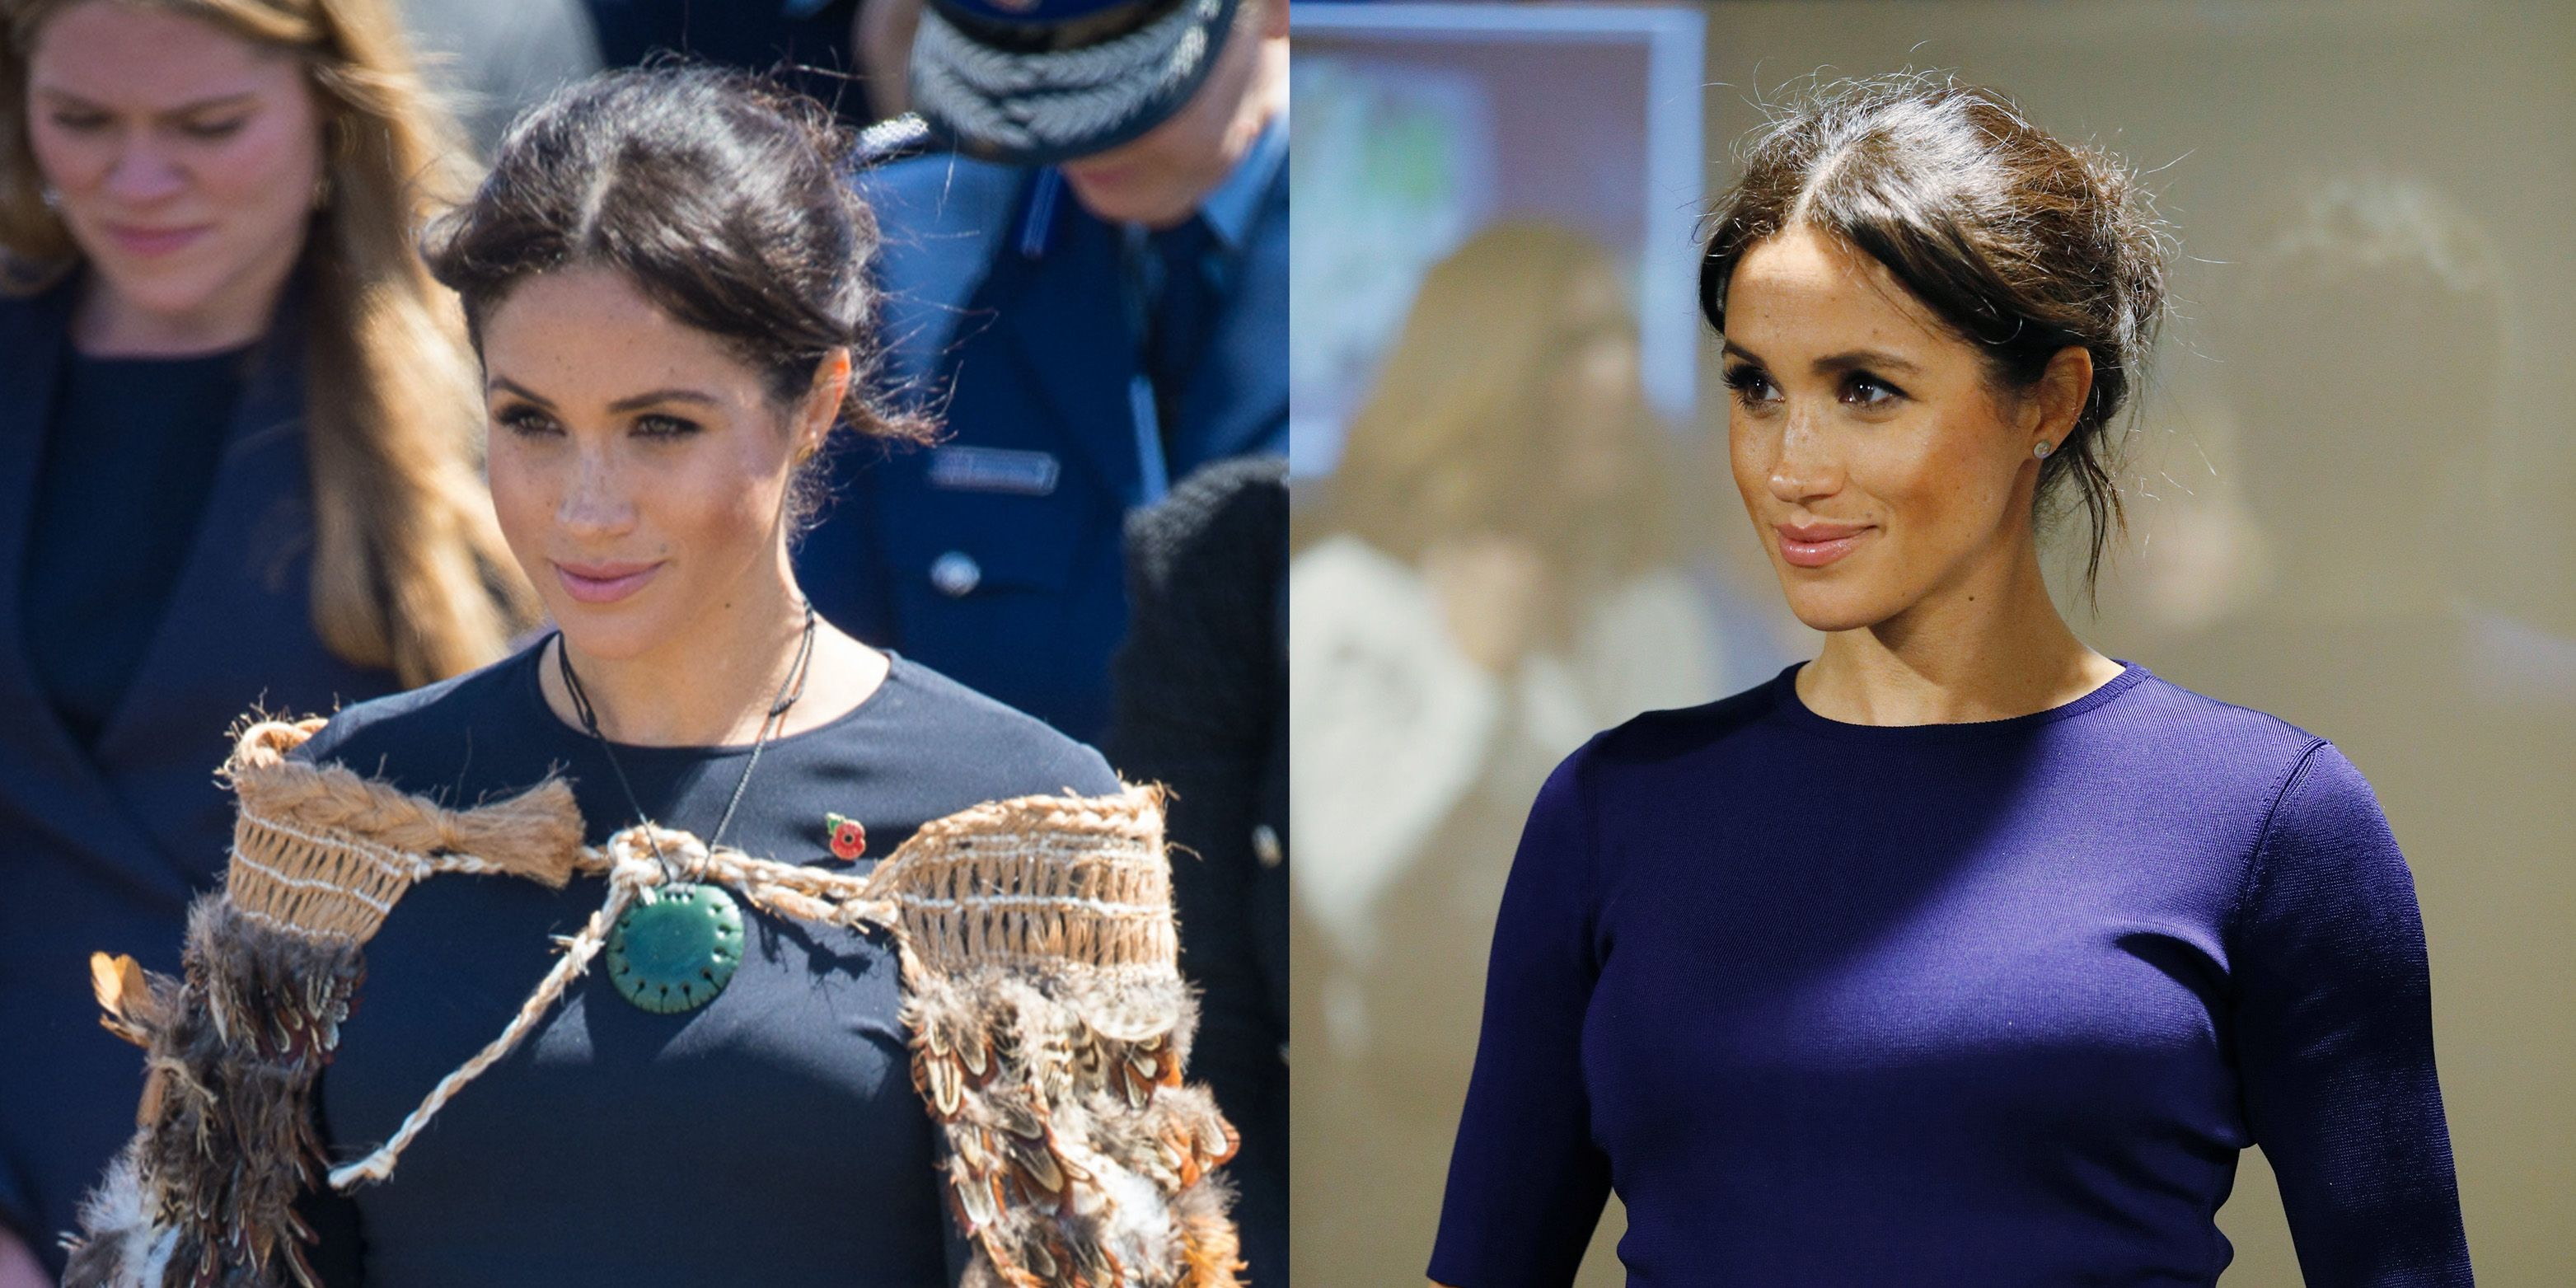 efdfb3520f Meghan Markle Enlists Her Two Wedding Dress Designers for Her Final Royal  Tour Looks